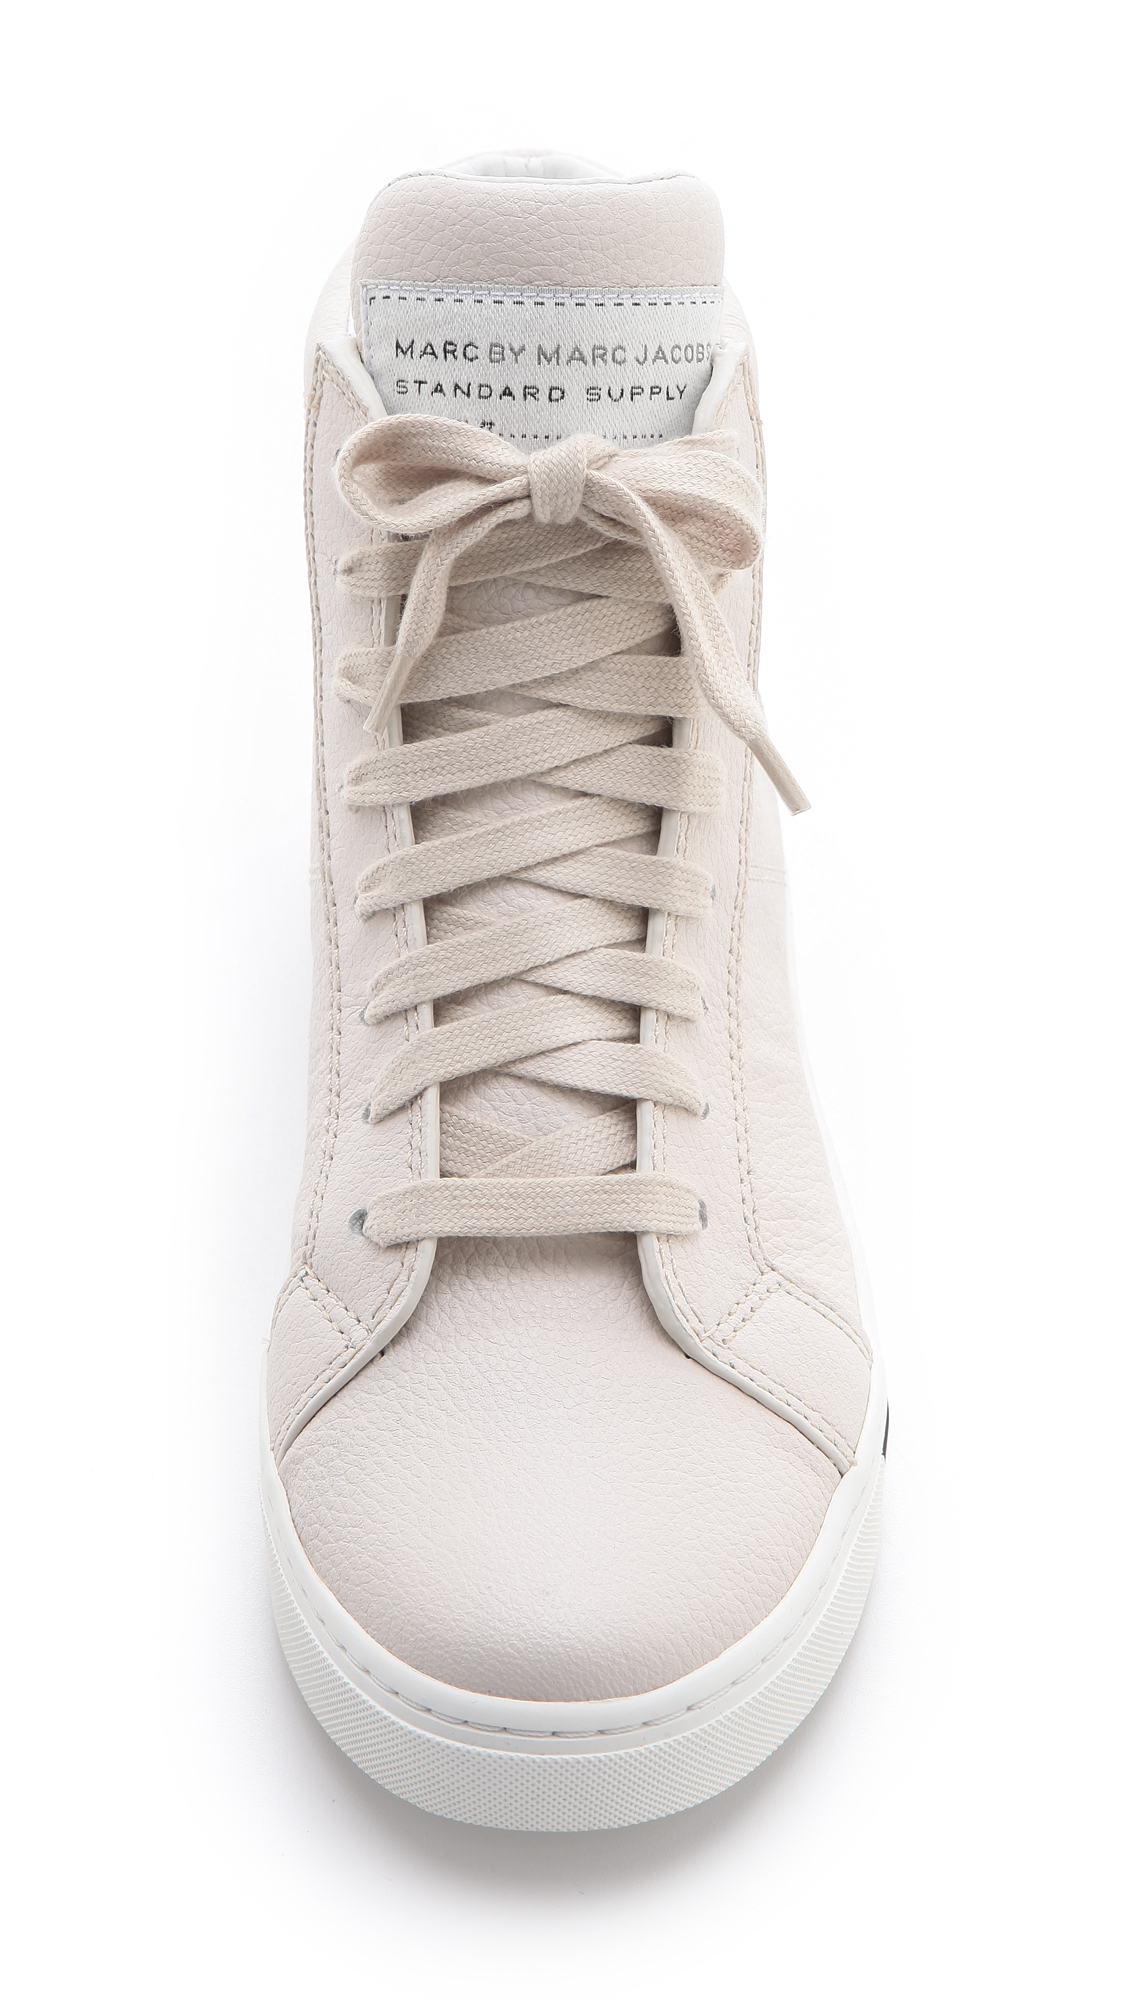 Jacobs Marc High By SneakersShopbop Top 6Y7yfgb